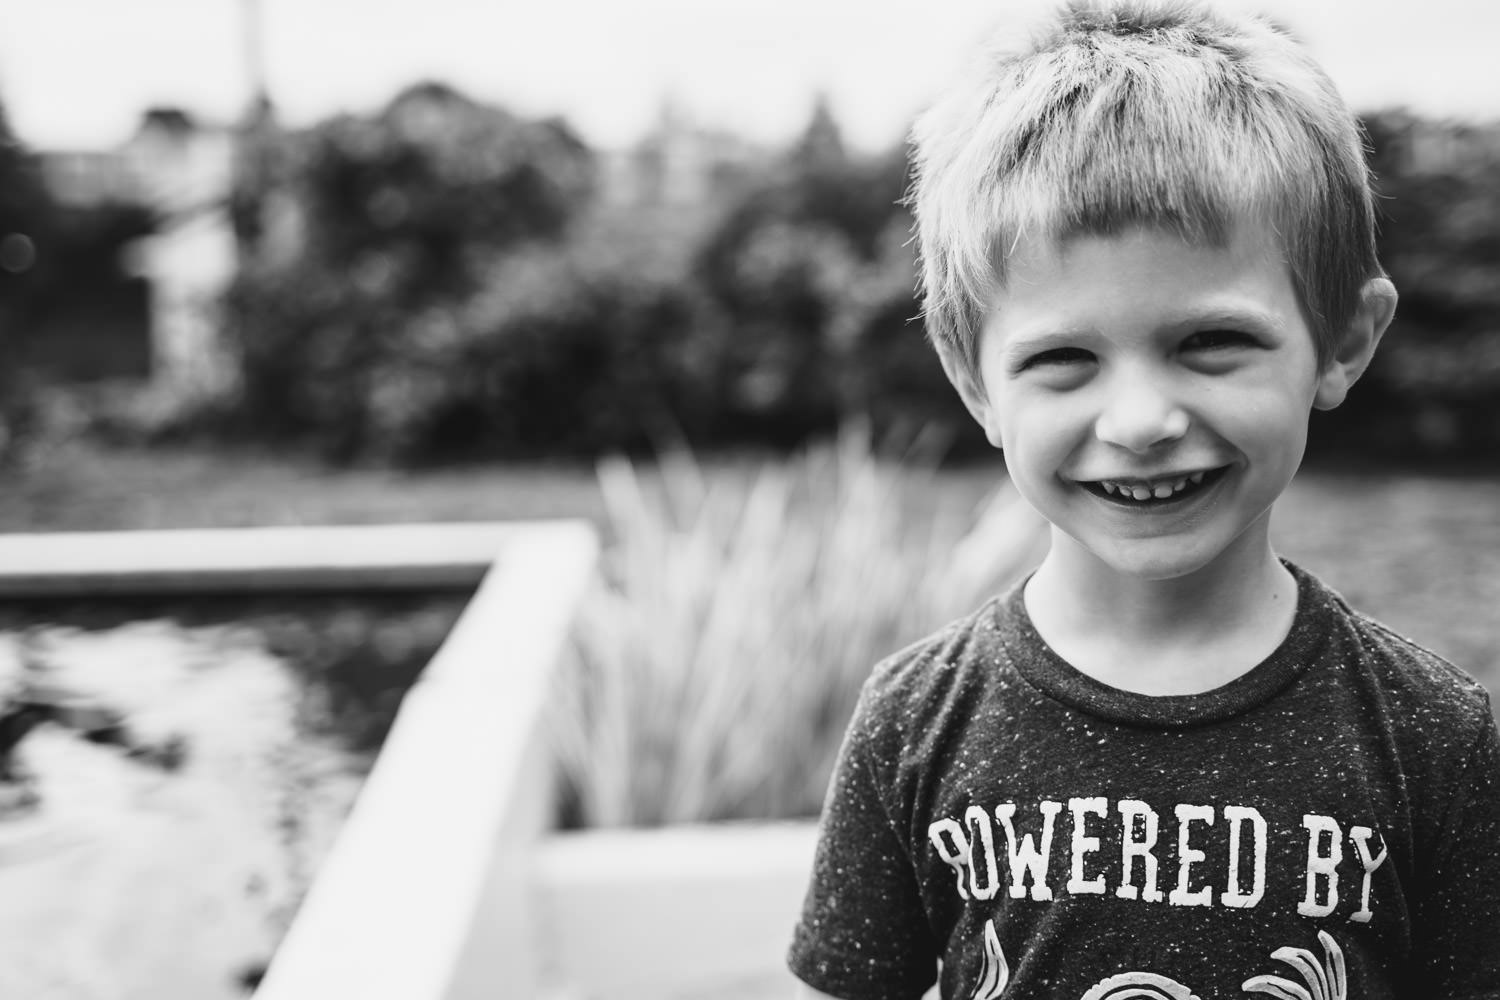 A little boy smiles at the camera.